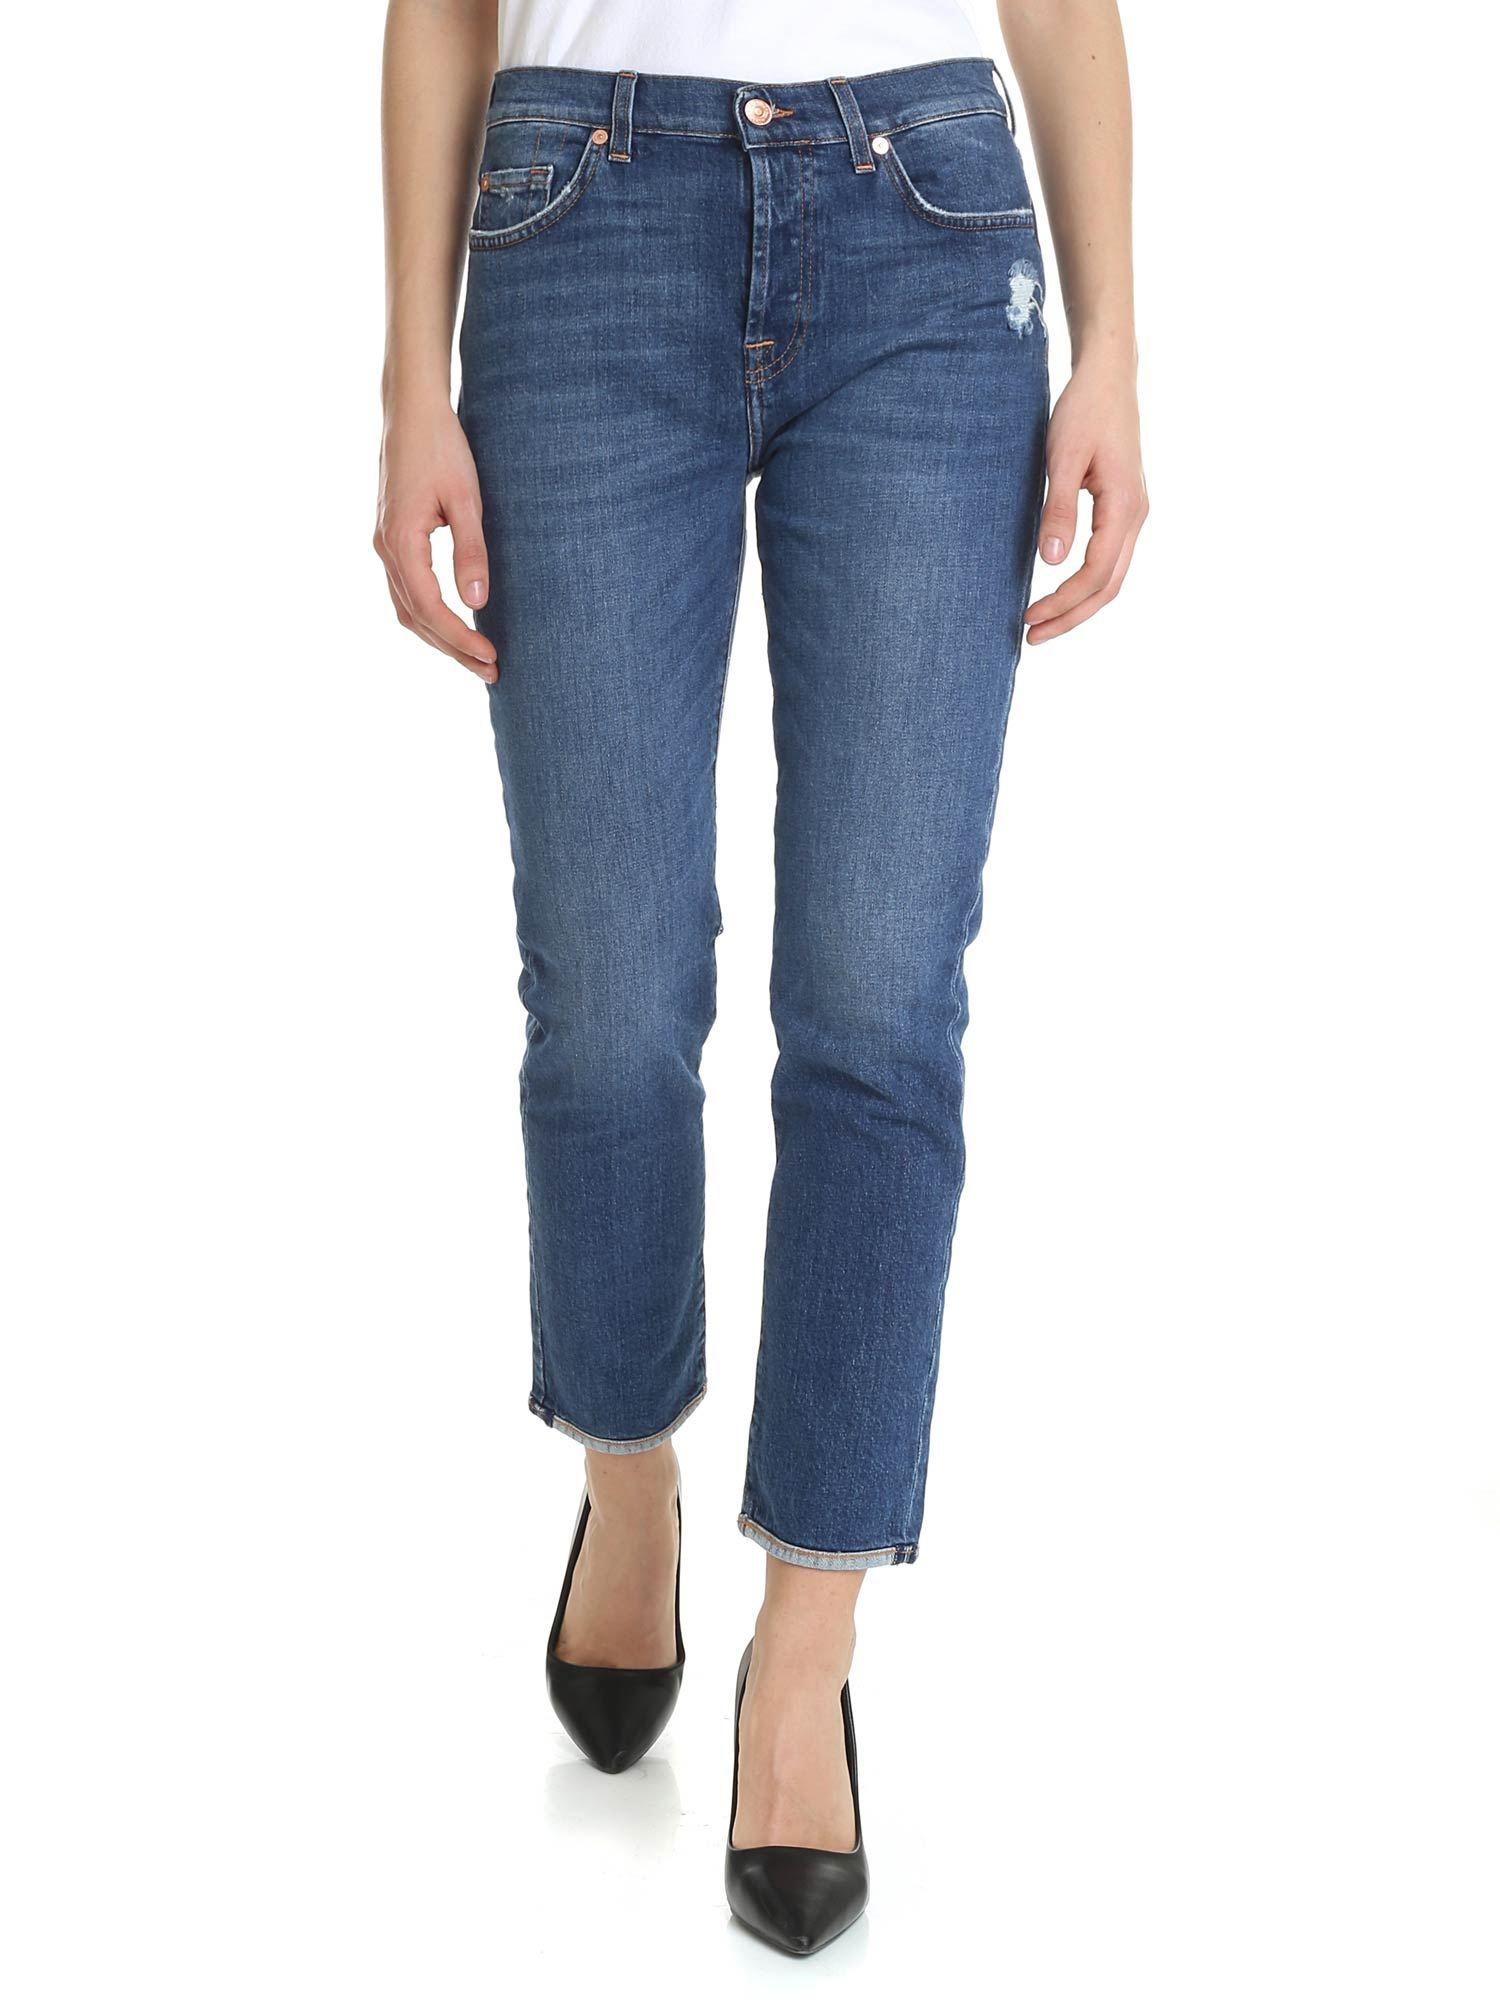 919971708f8 Lyst - 7 For All Mankind Blue Asher Jeans in Blue